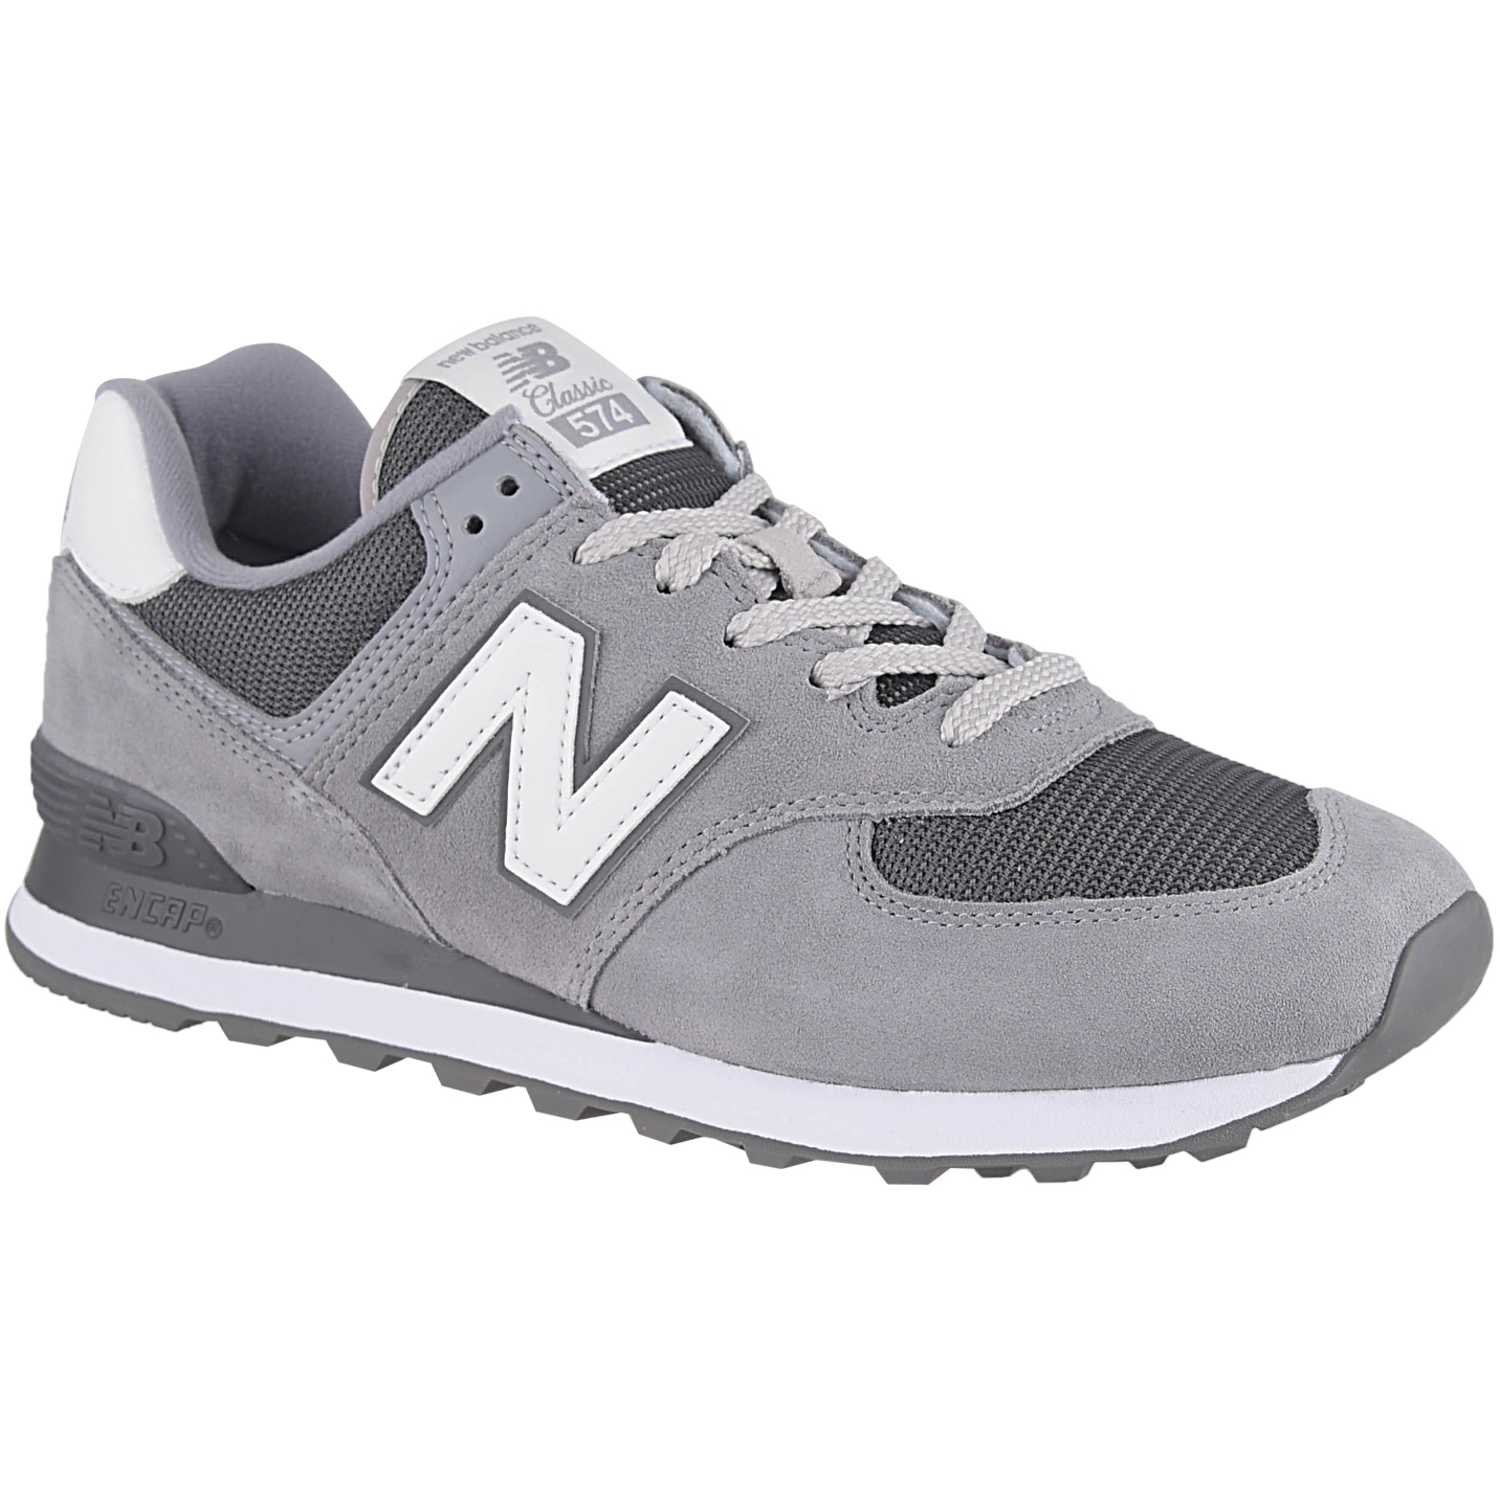 New Balance 574 Gris / plomo Walking | platanitos.com